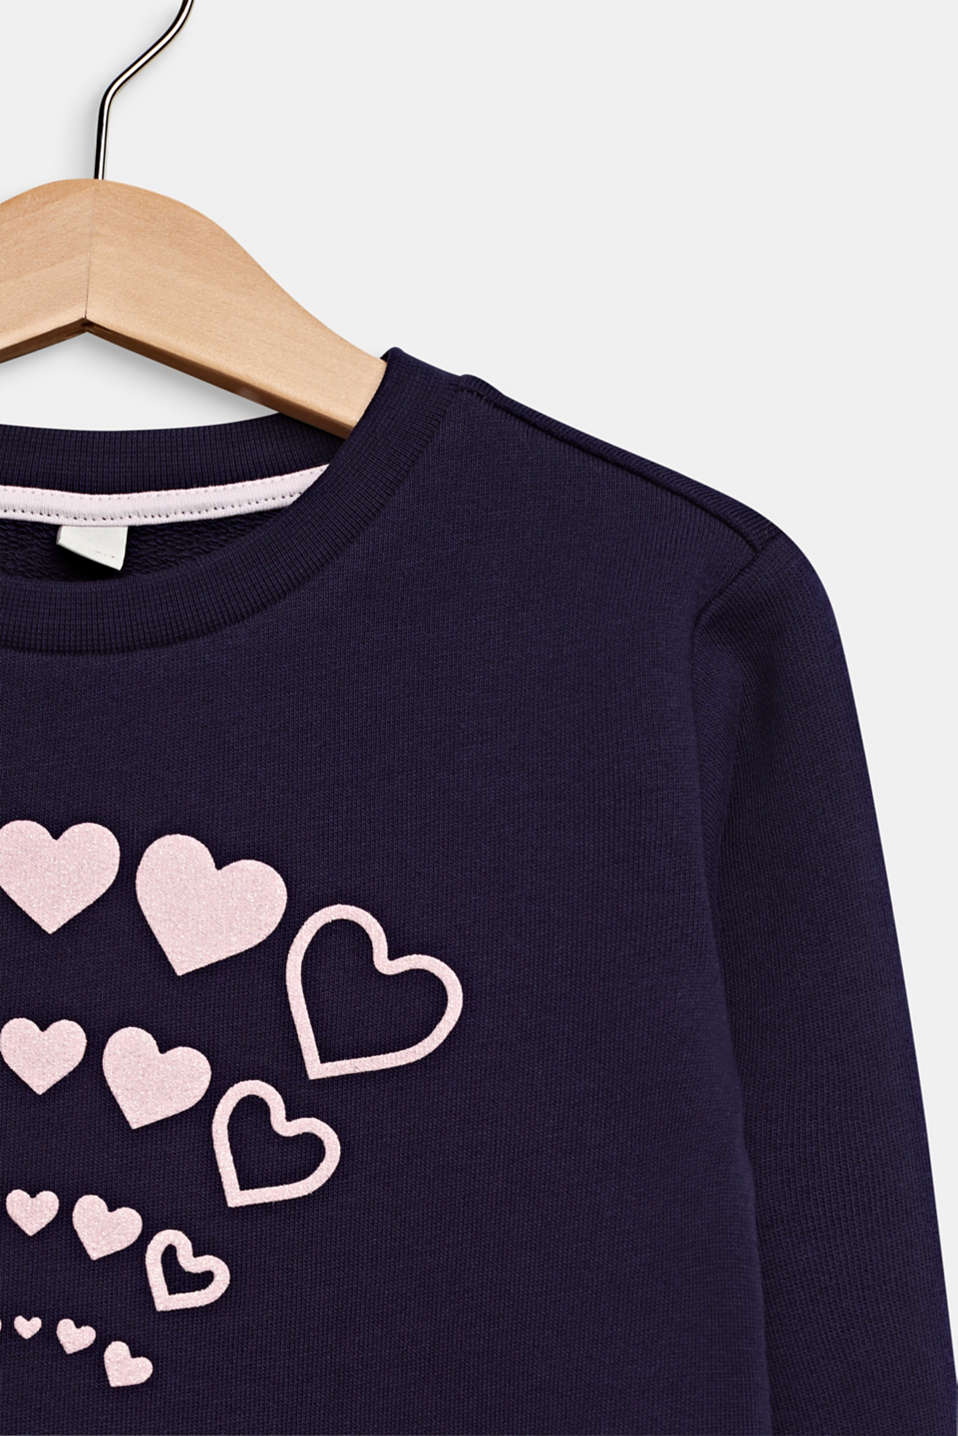 Sweatshirt with a glitter print, 100% cotton, NIGHT BLUE, detail image number 2